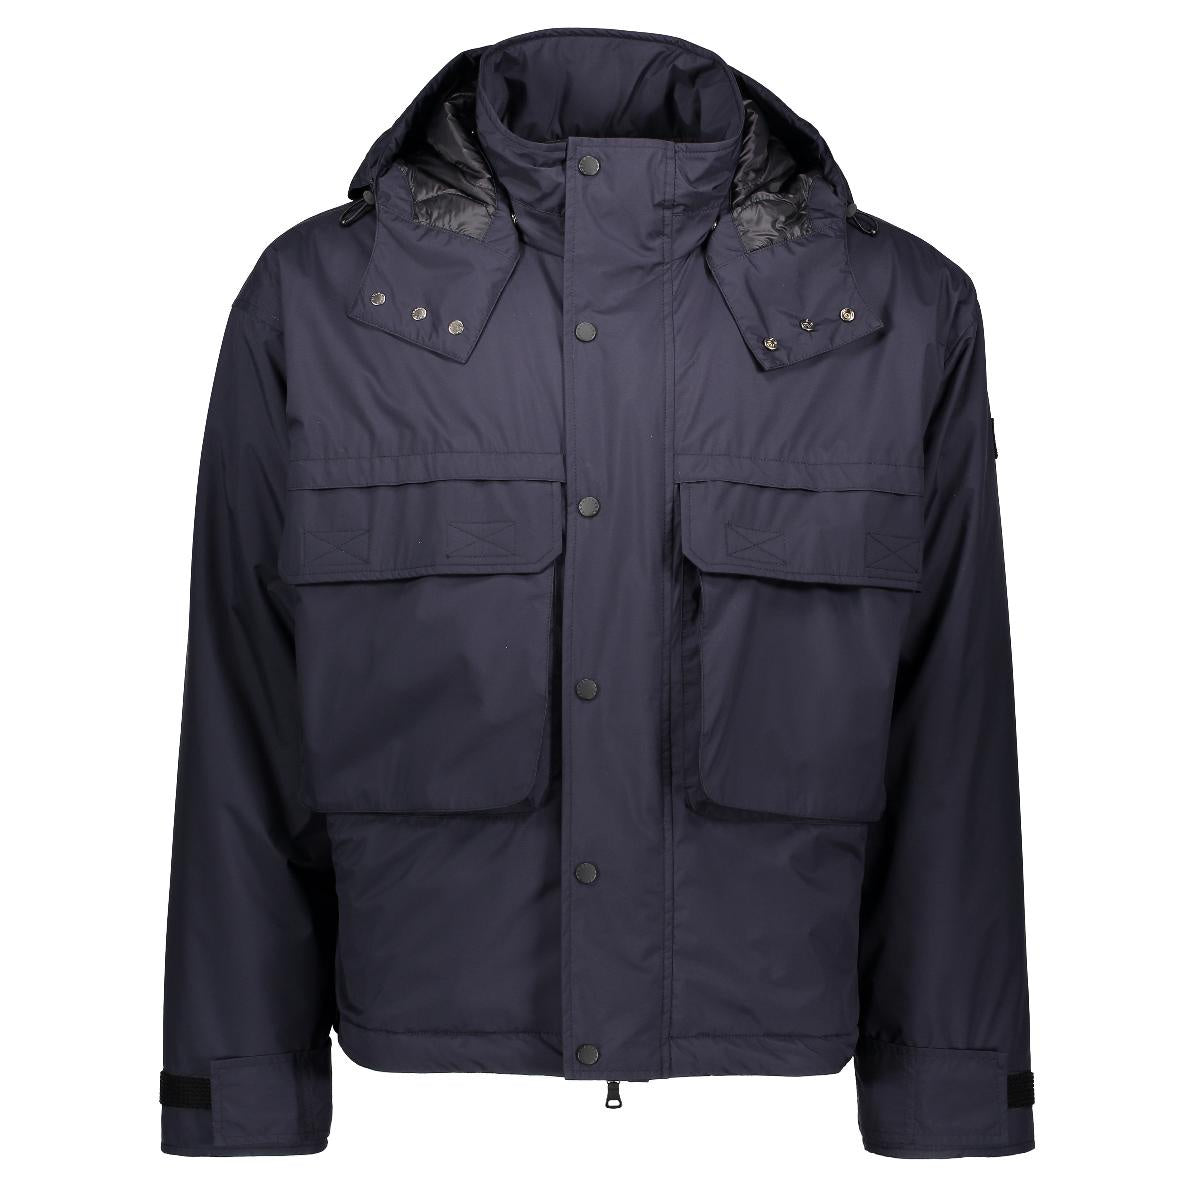 Navy Jacket Big Pocket- Large